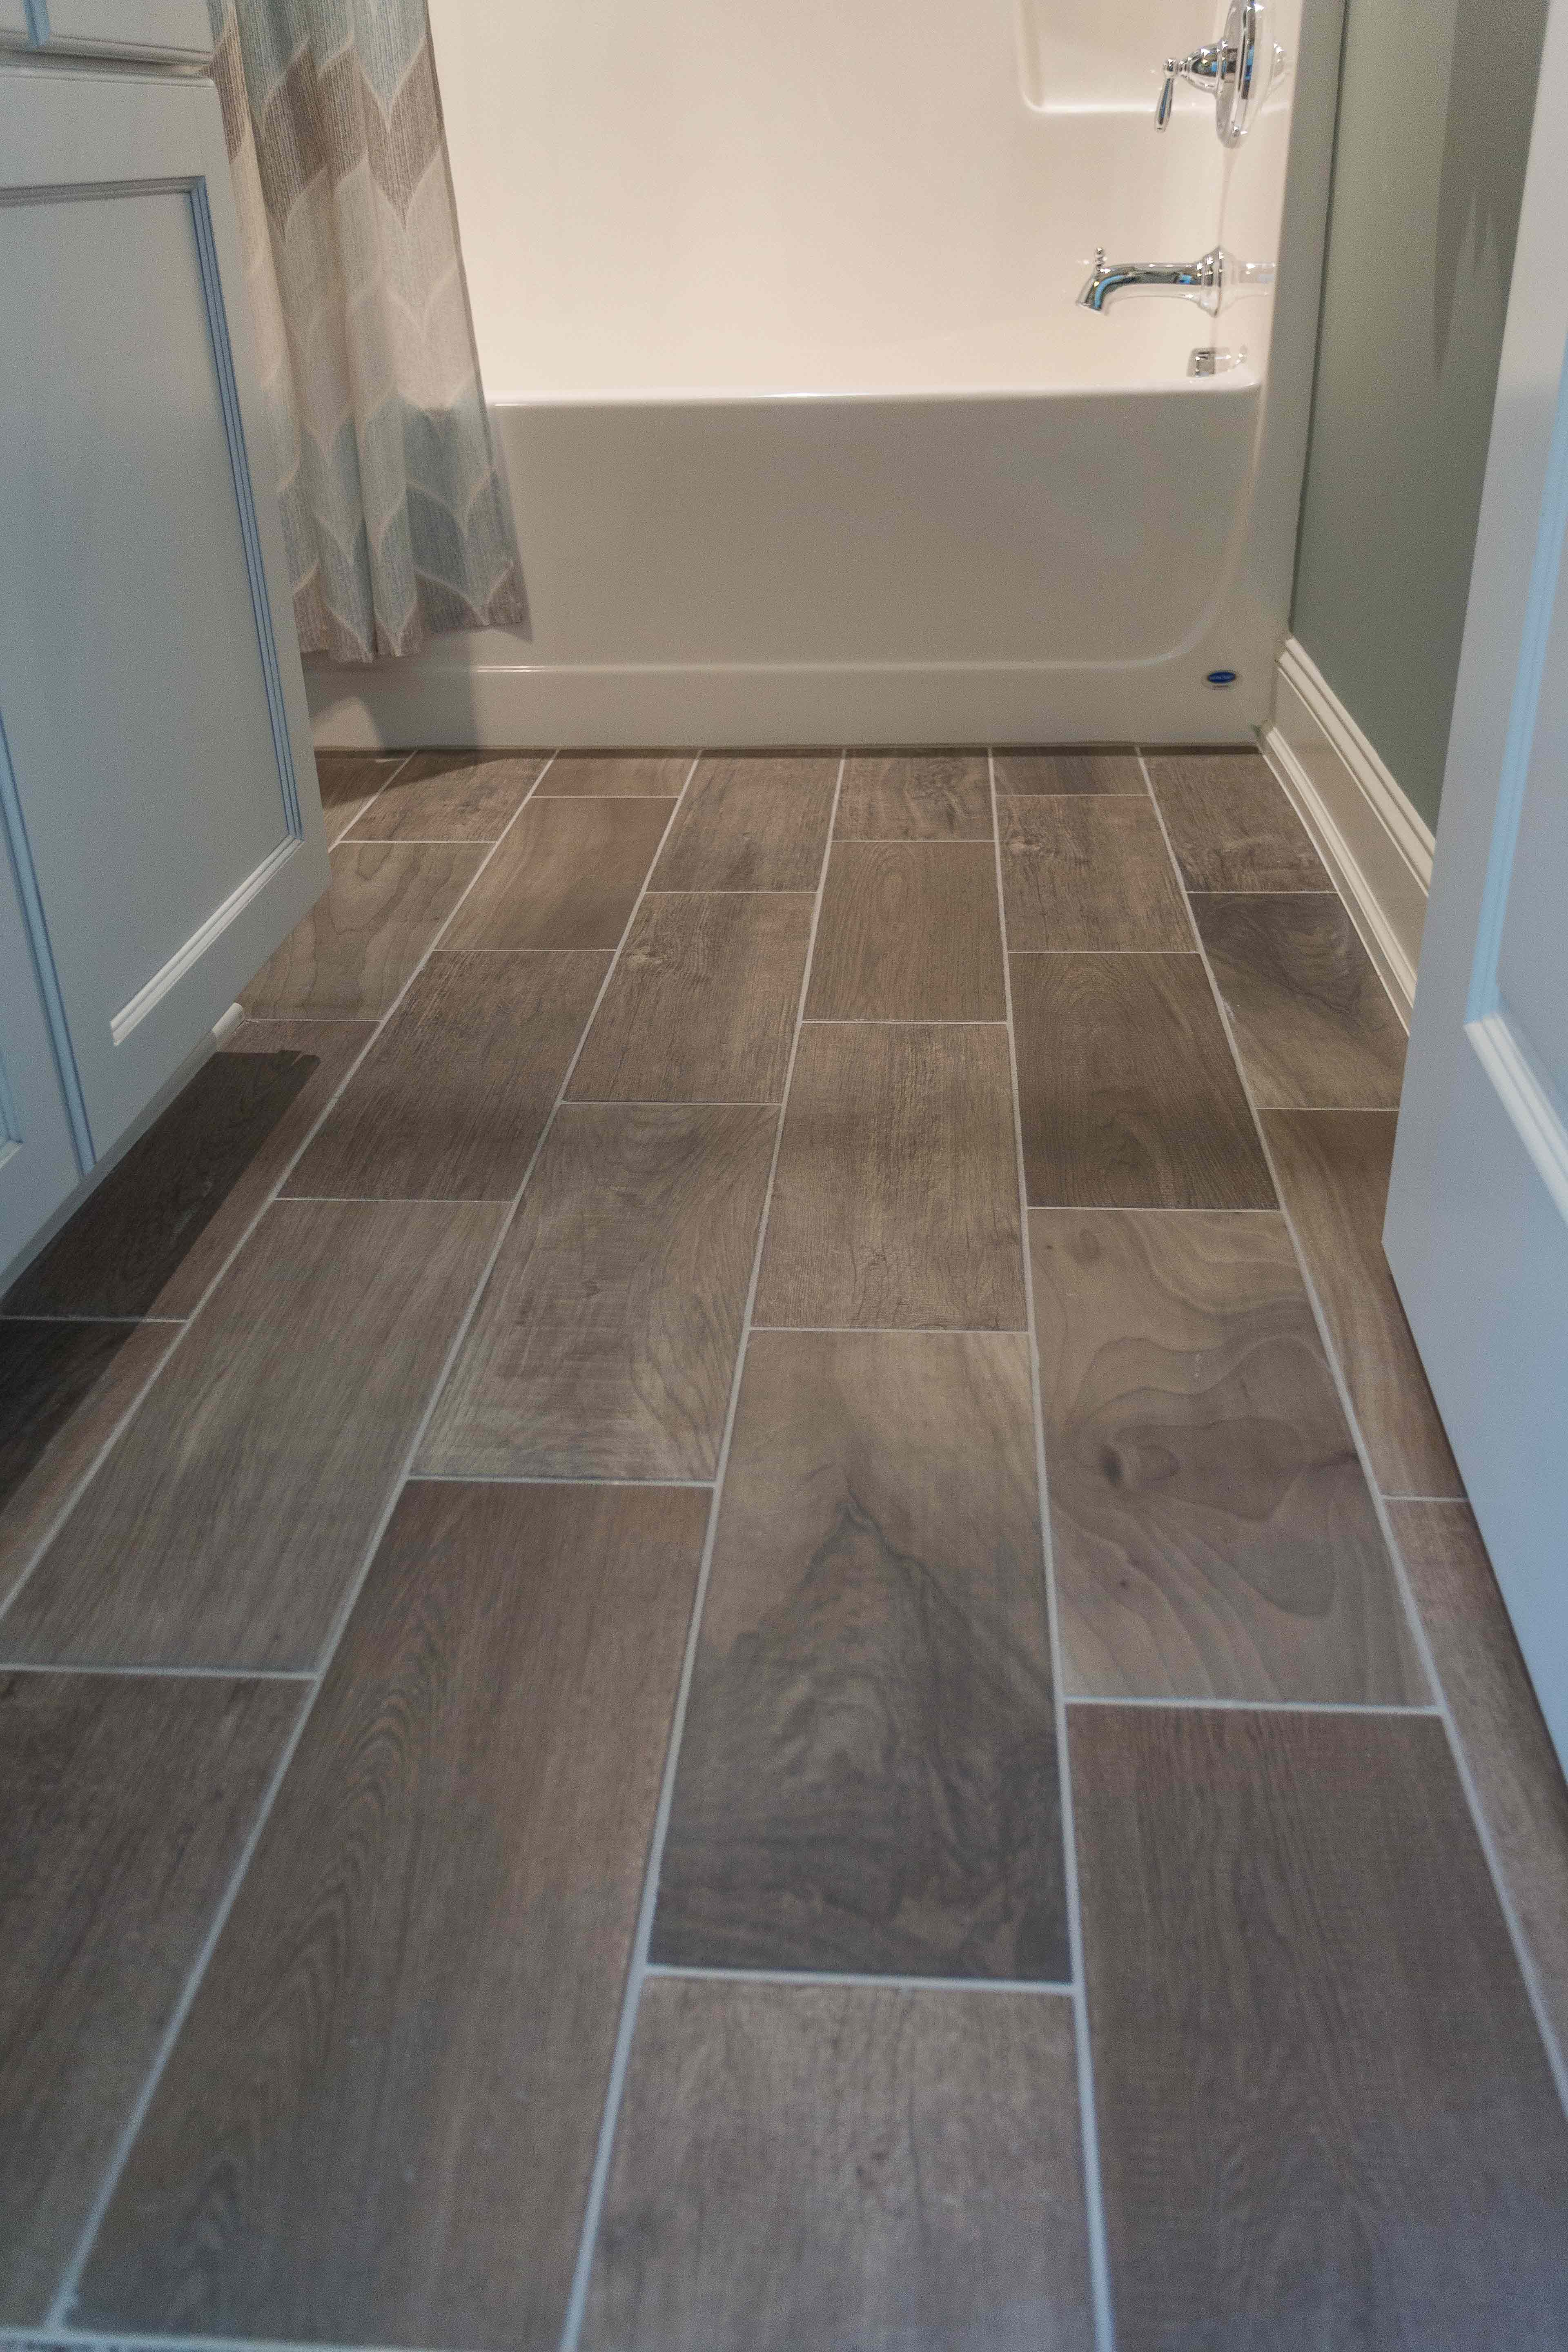 Capital Tile And Flooring Tile Design Ideas